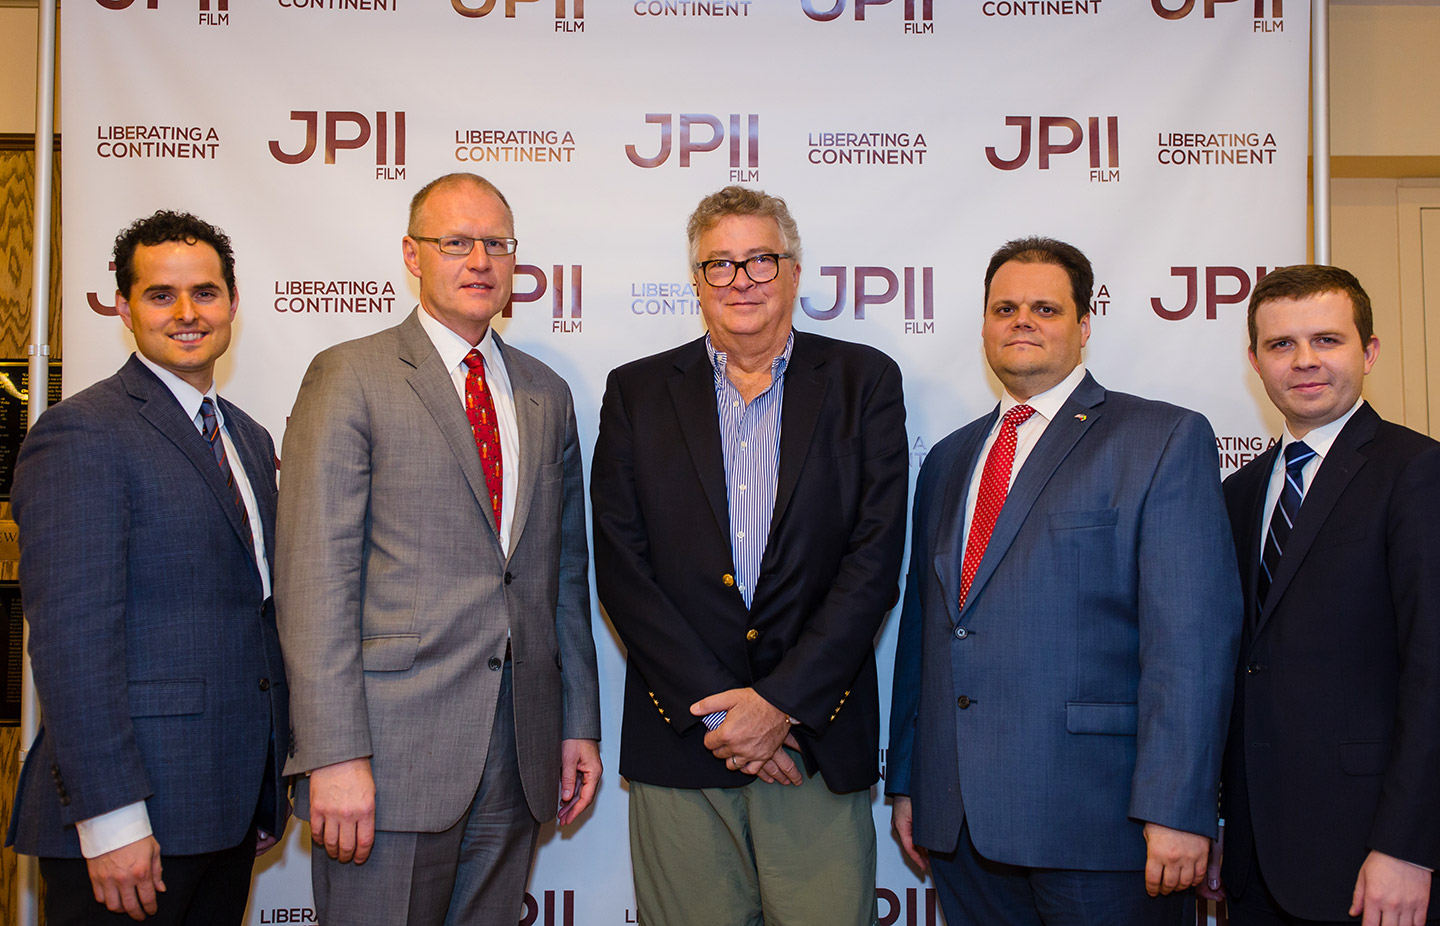 Director David Naglieri, Robert Rusiecki, Deputy Consul General of Poland in Chicago, Paul Hensler, event partner and filmmaker, and producer Szymon Czyszek at the premiere of the documentary in Chicago.